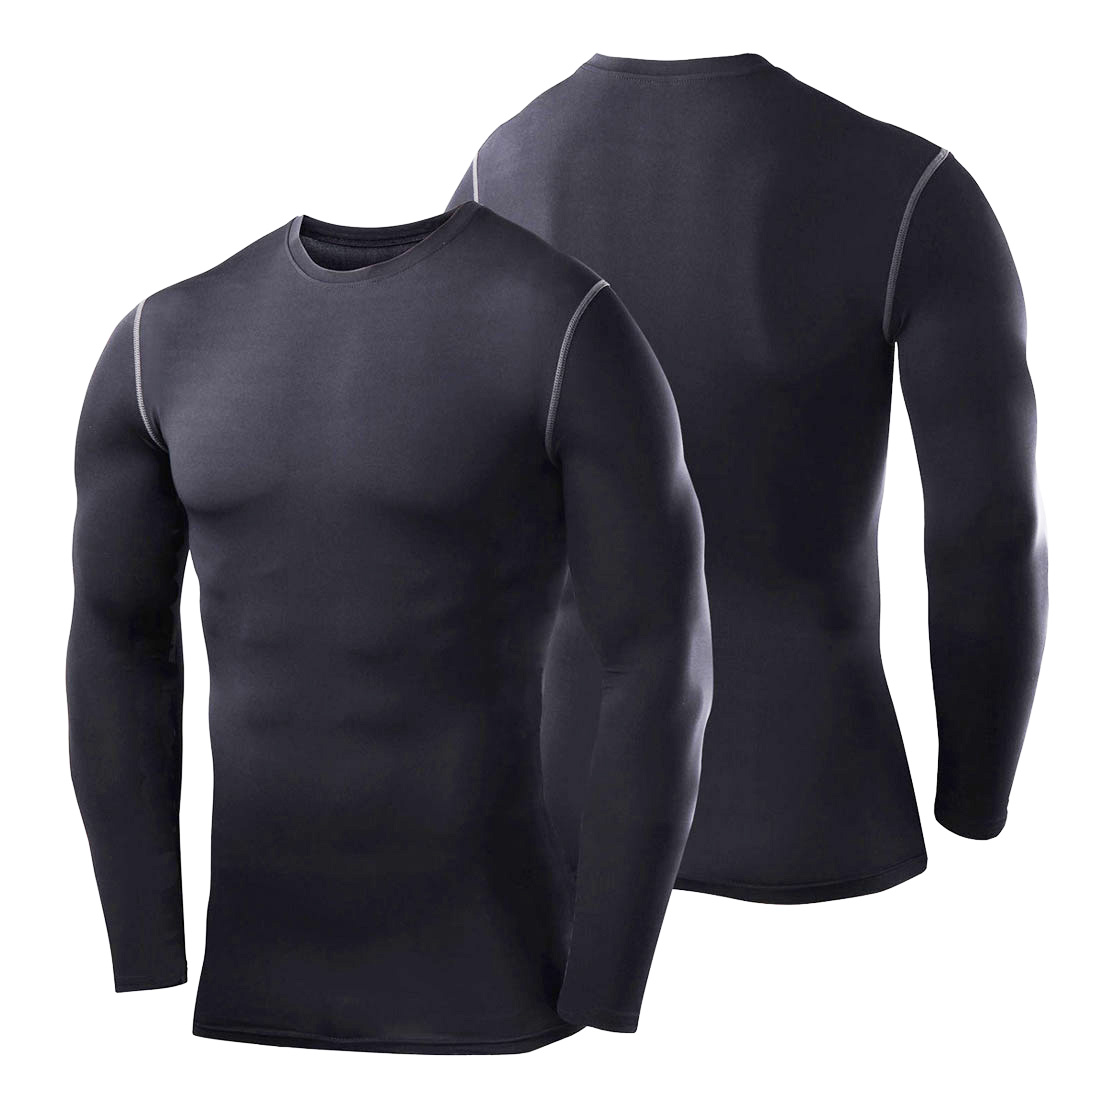 Mens under compression body armour base layer thermal skin for Mens black thermal t shirts